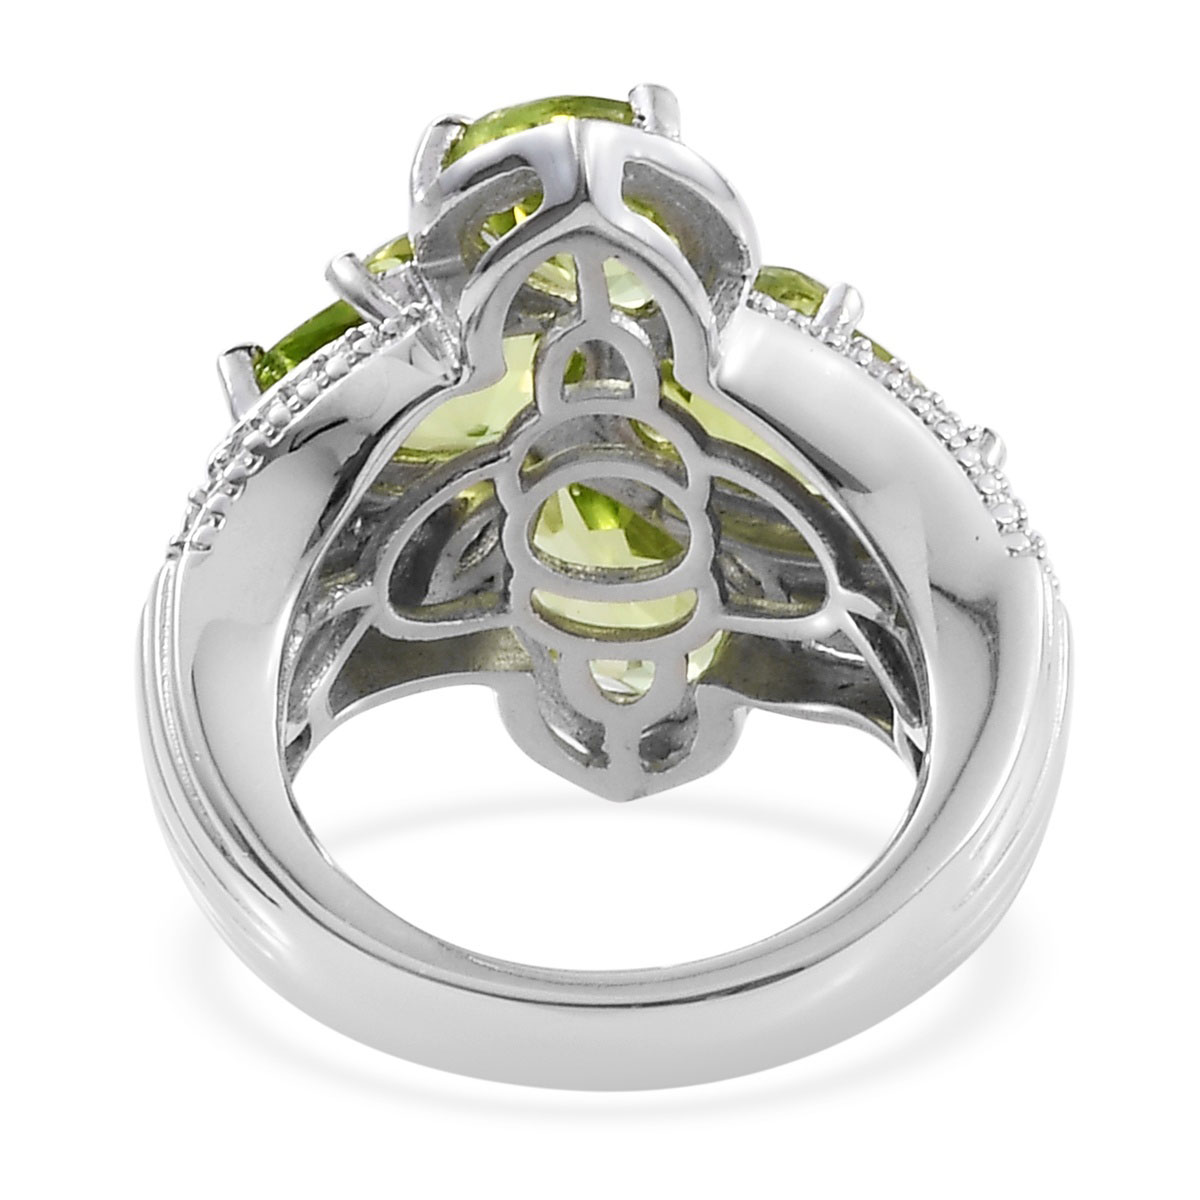 Hebei Peridot, Zircon Ring in Platinum Over Sterling Silver (Size 5.0) (Avg. 8.30 g) 6.16 ctw